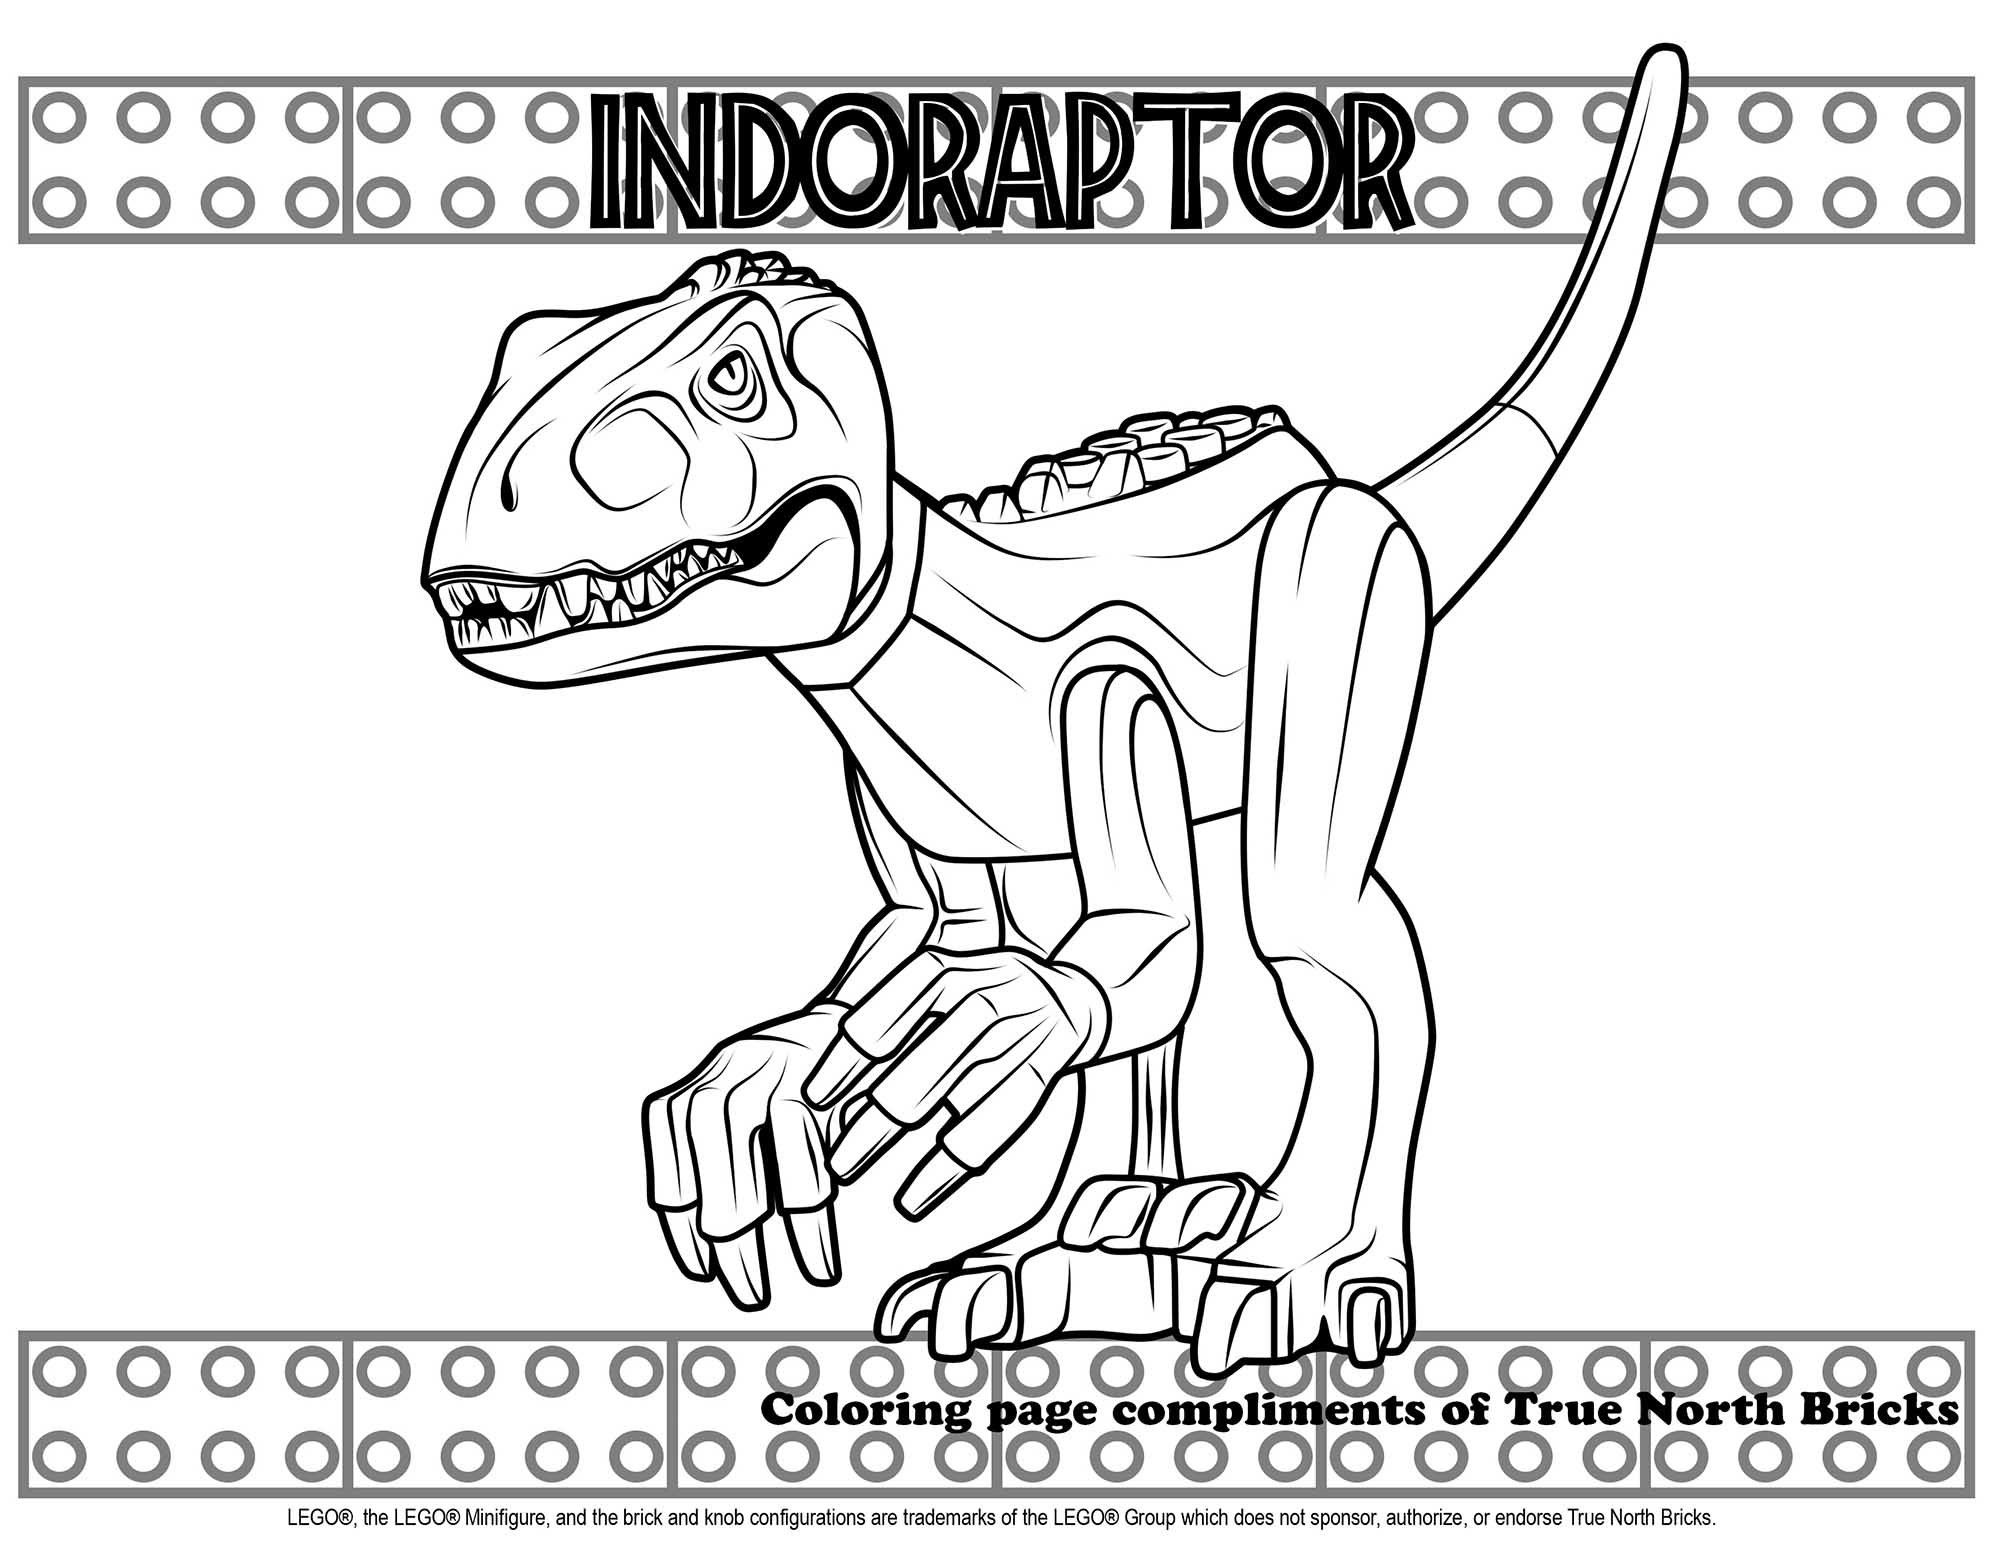 Velociraptor Coloring Page - Dinosaur Coloring Pages | Dinosaur ... | 1545x2000